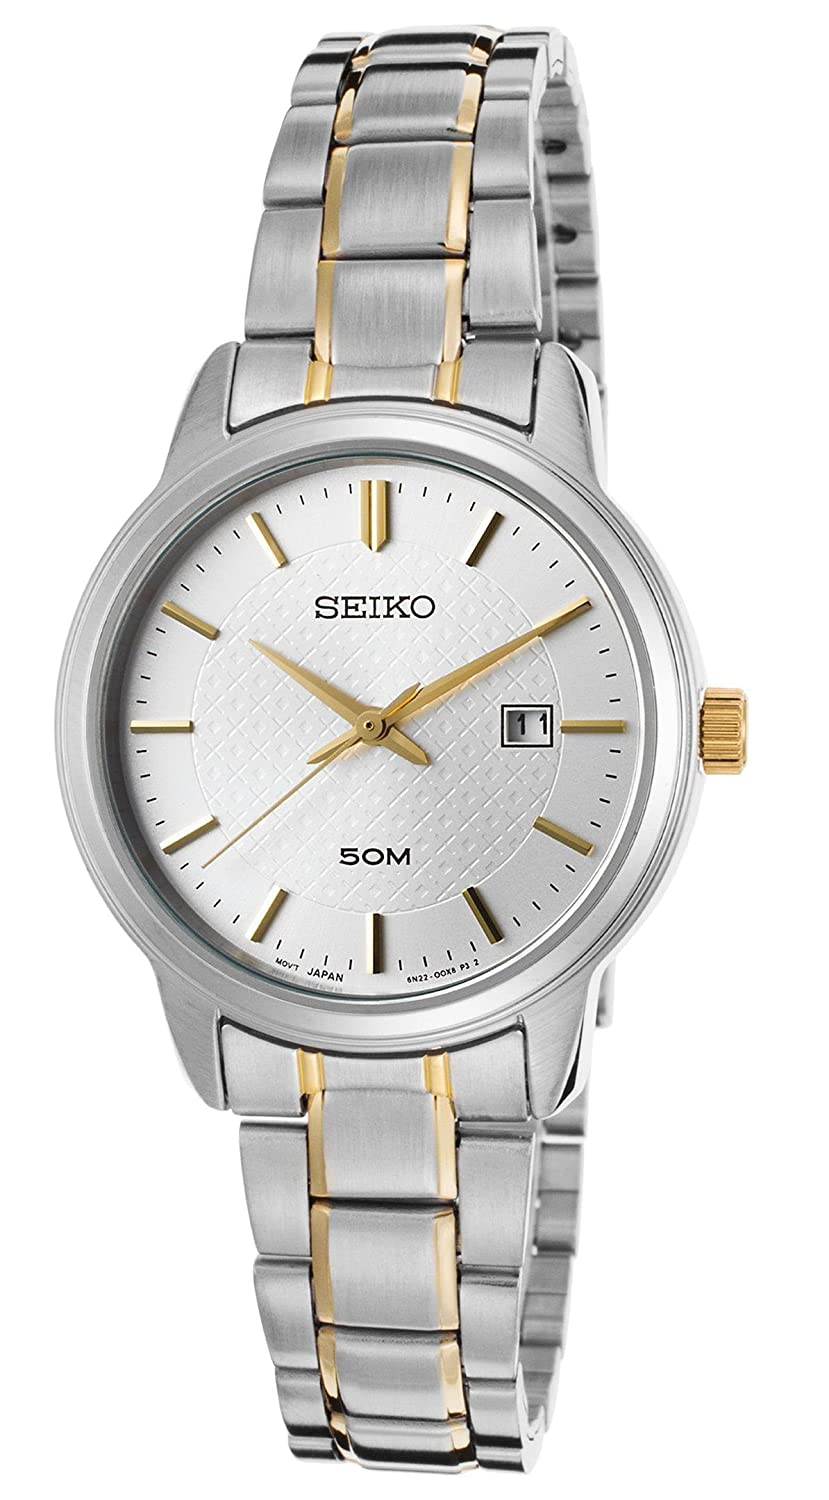 Amazon.com: Seiko Watches Womens Neo Classic Two-Tone Stainless Steel Watch (Silver/Gold): Seiko: Watches